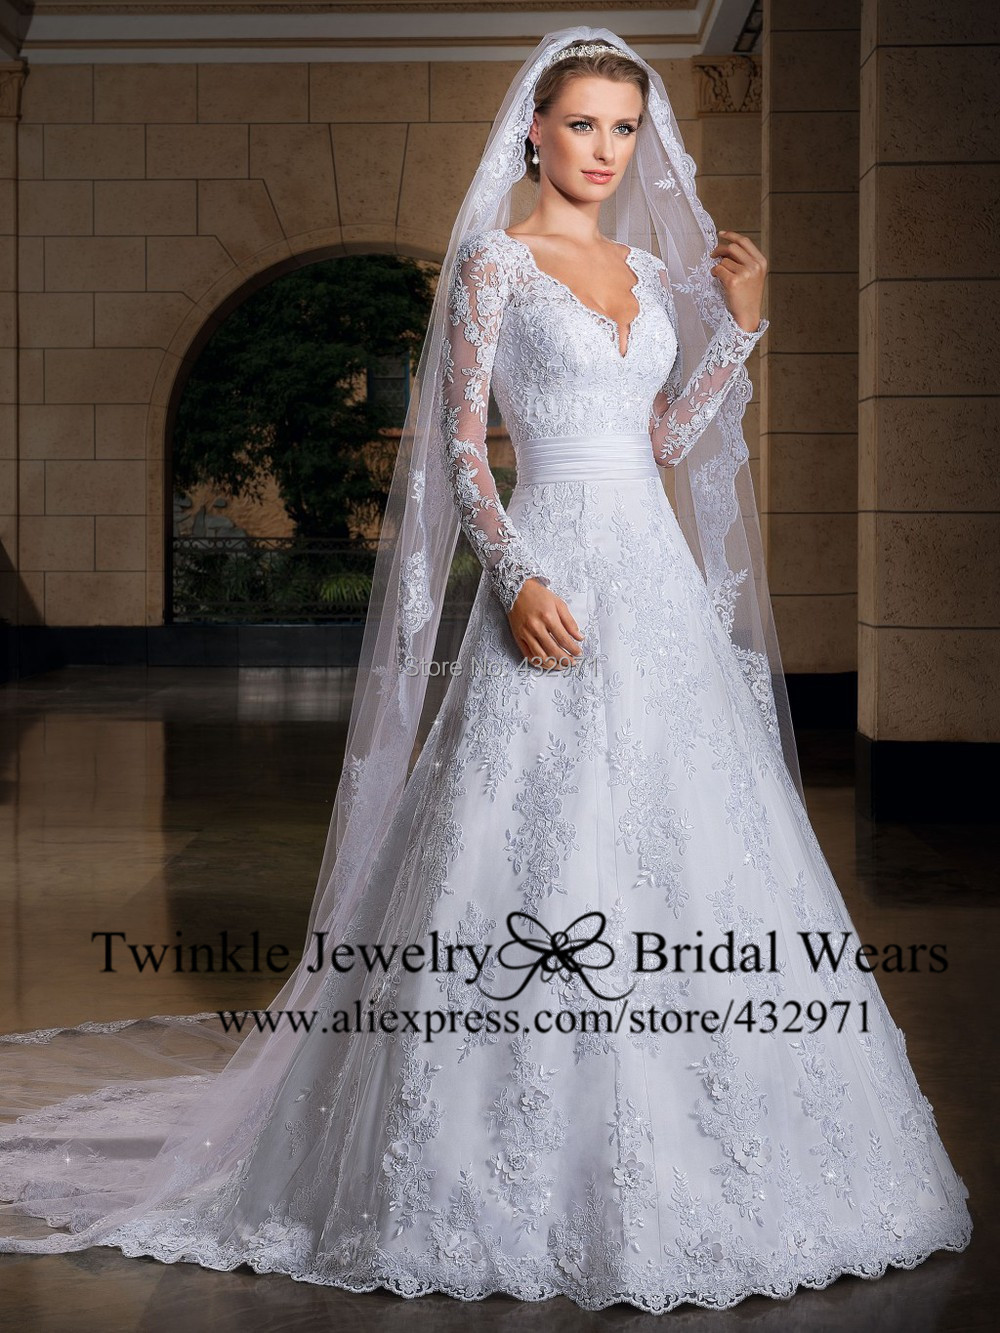 Wedding Dress Prices